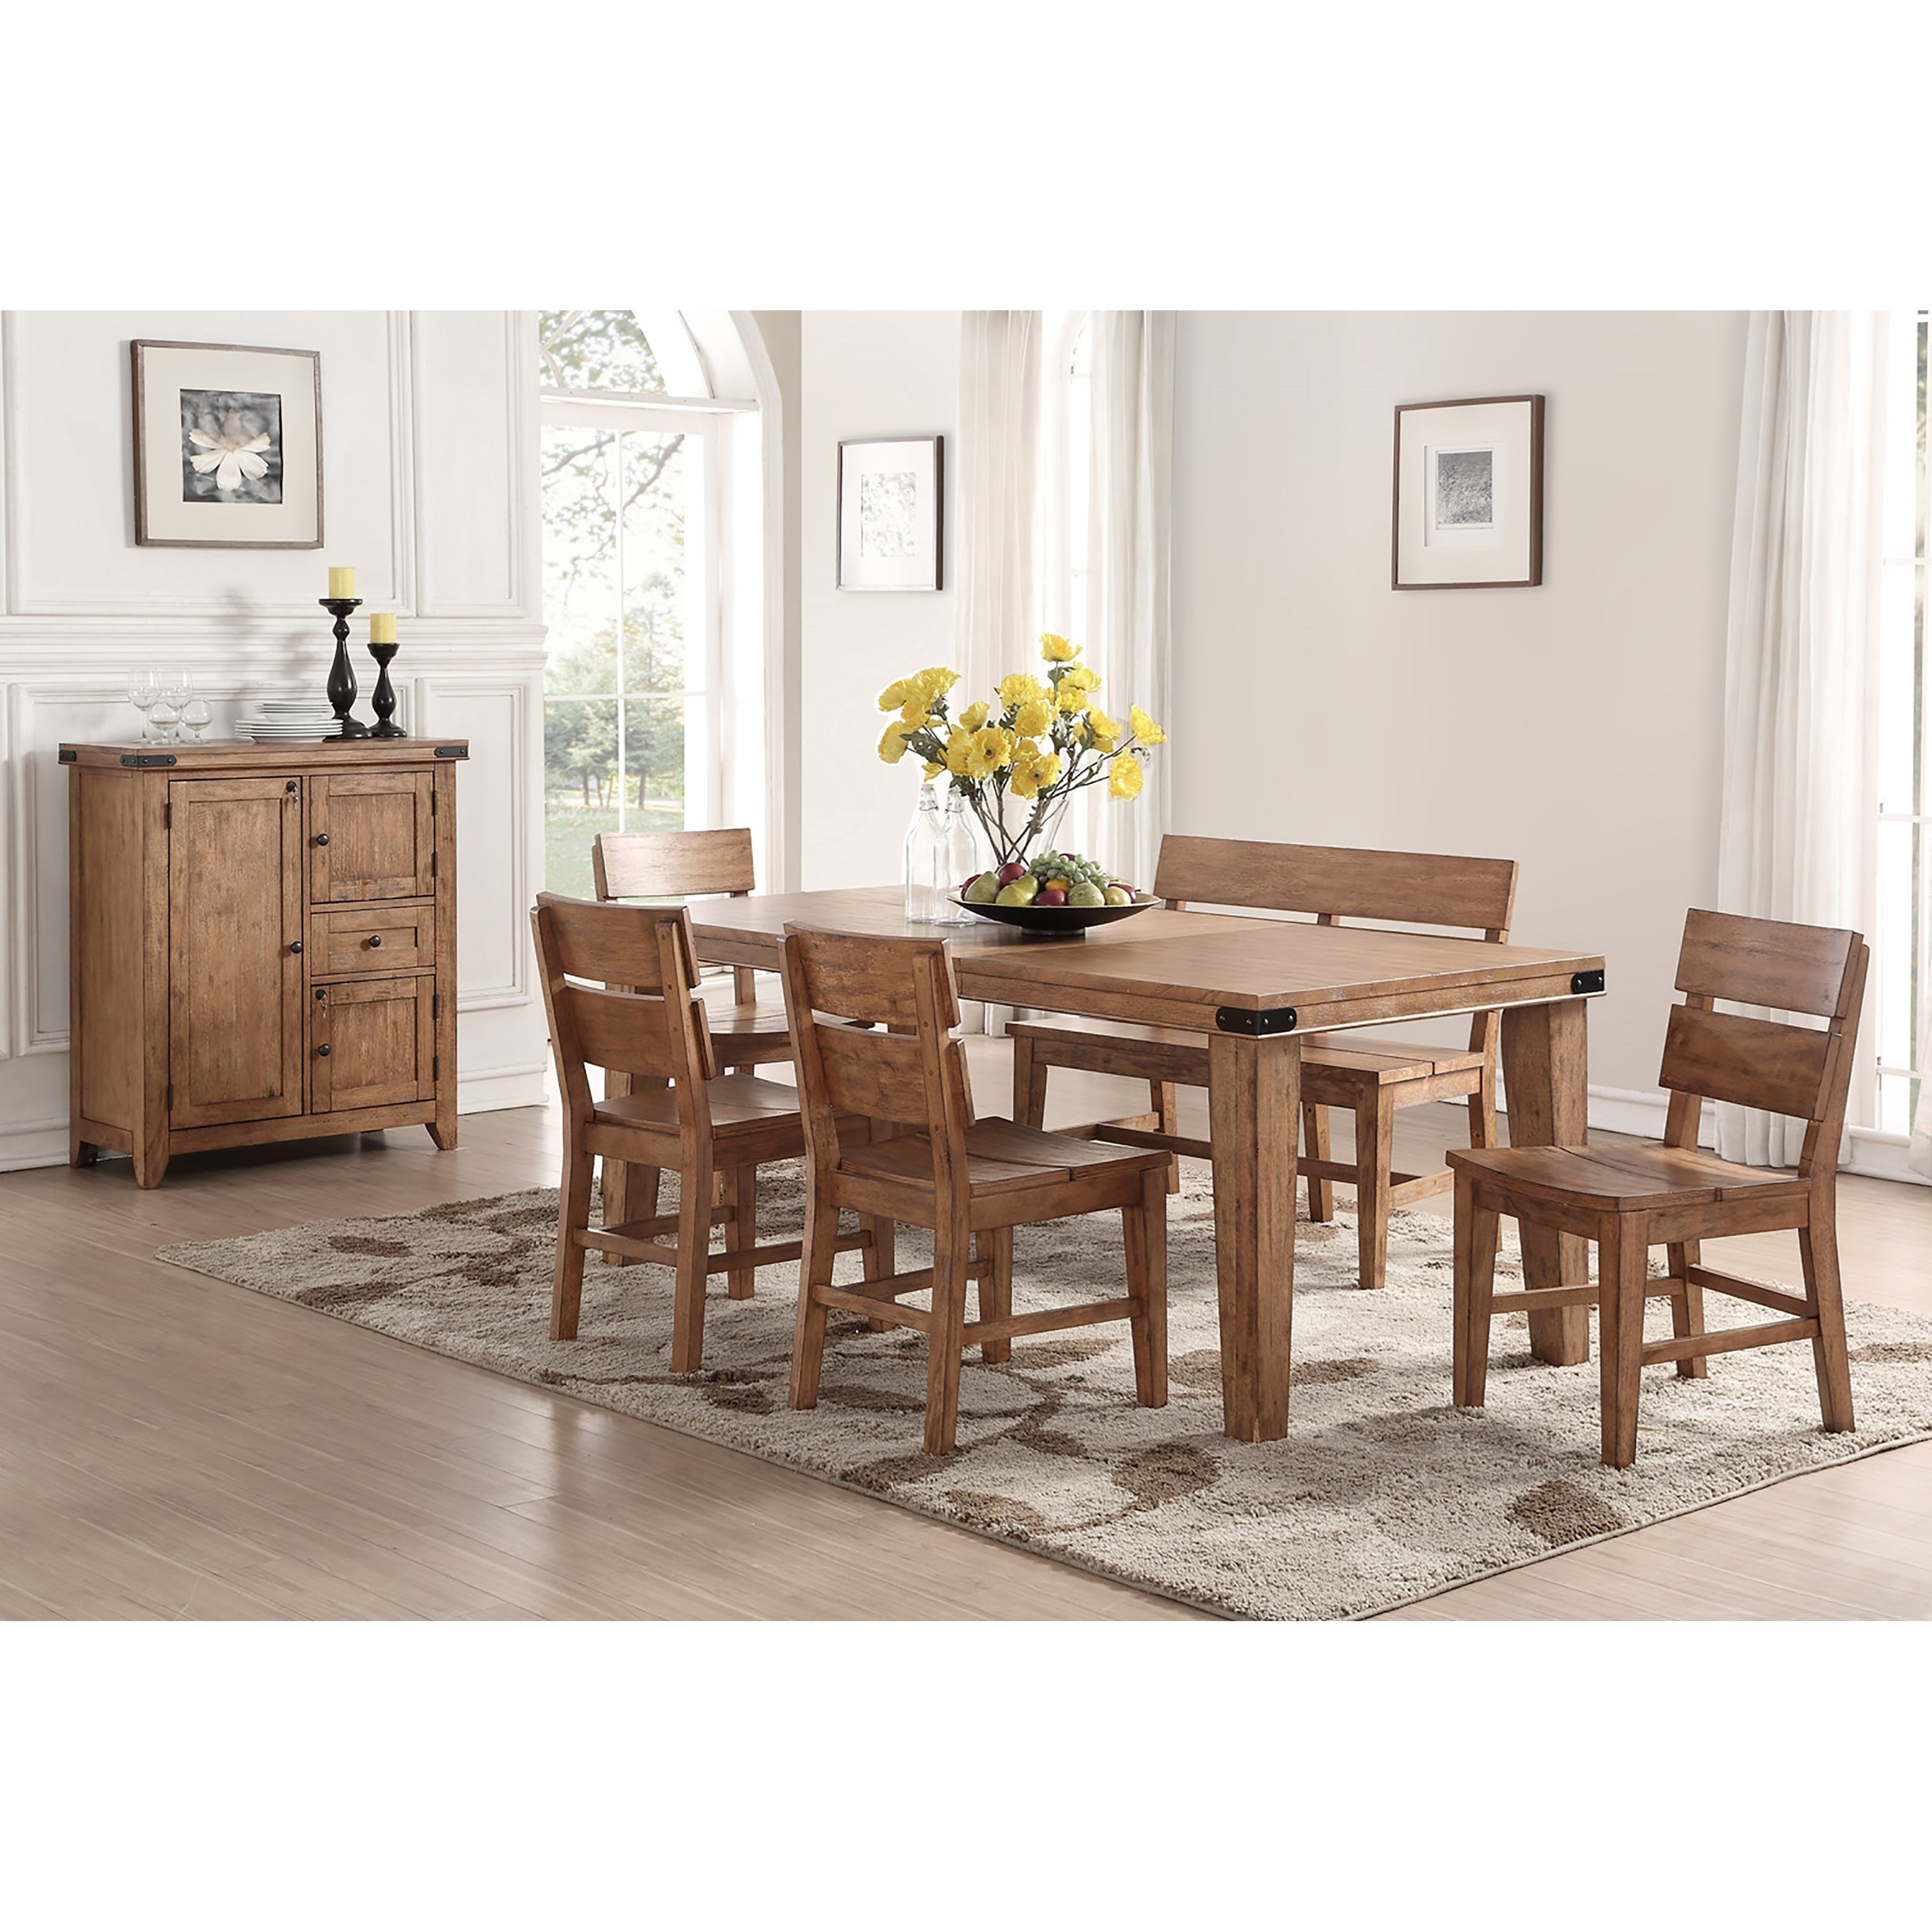 Casual Dining Room Furniture: E.C.I. Furniture Shenandoah Casual Dining Room Group